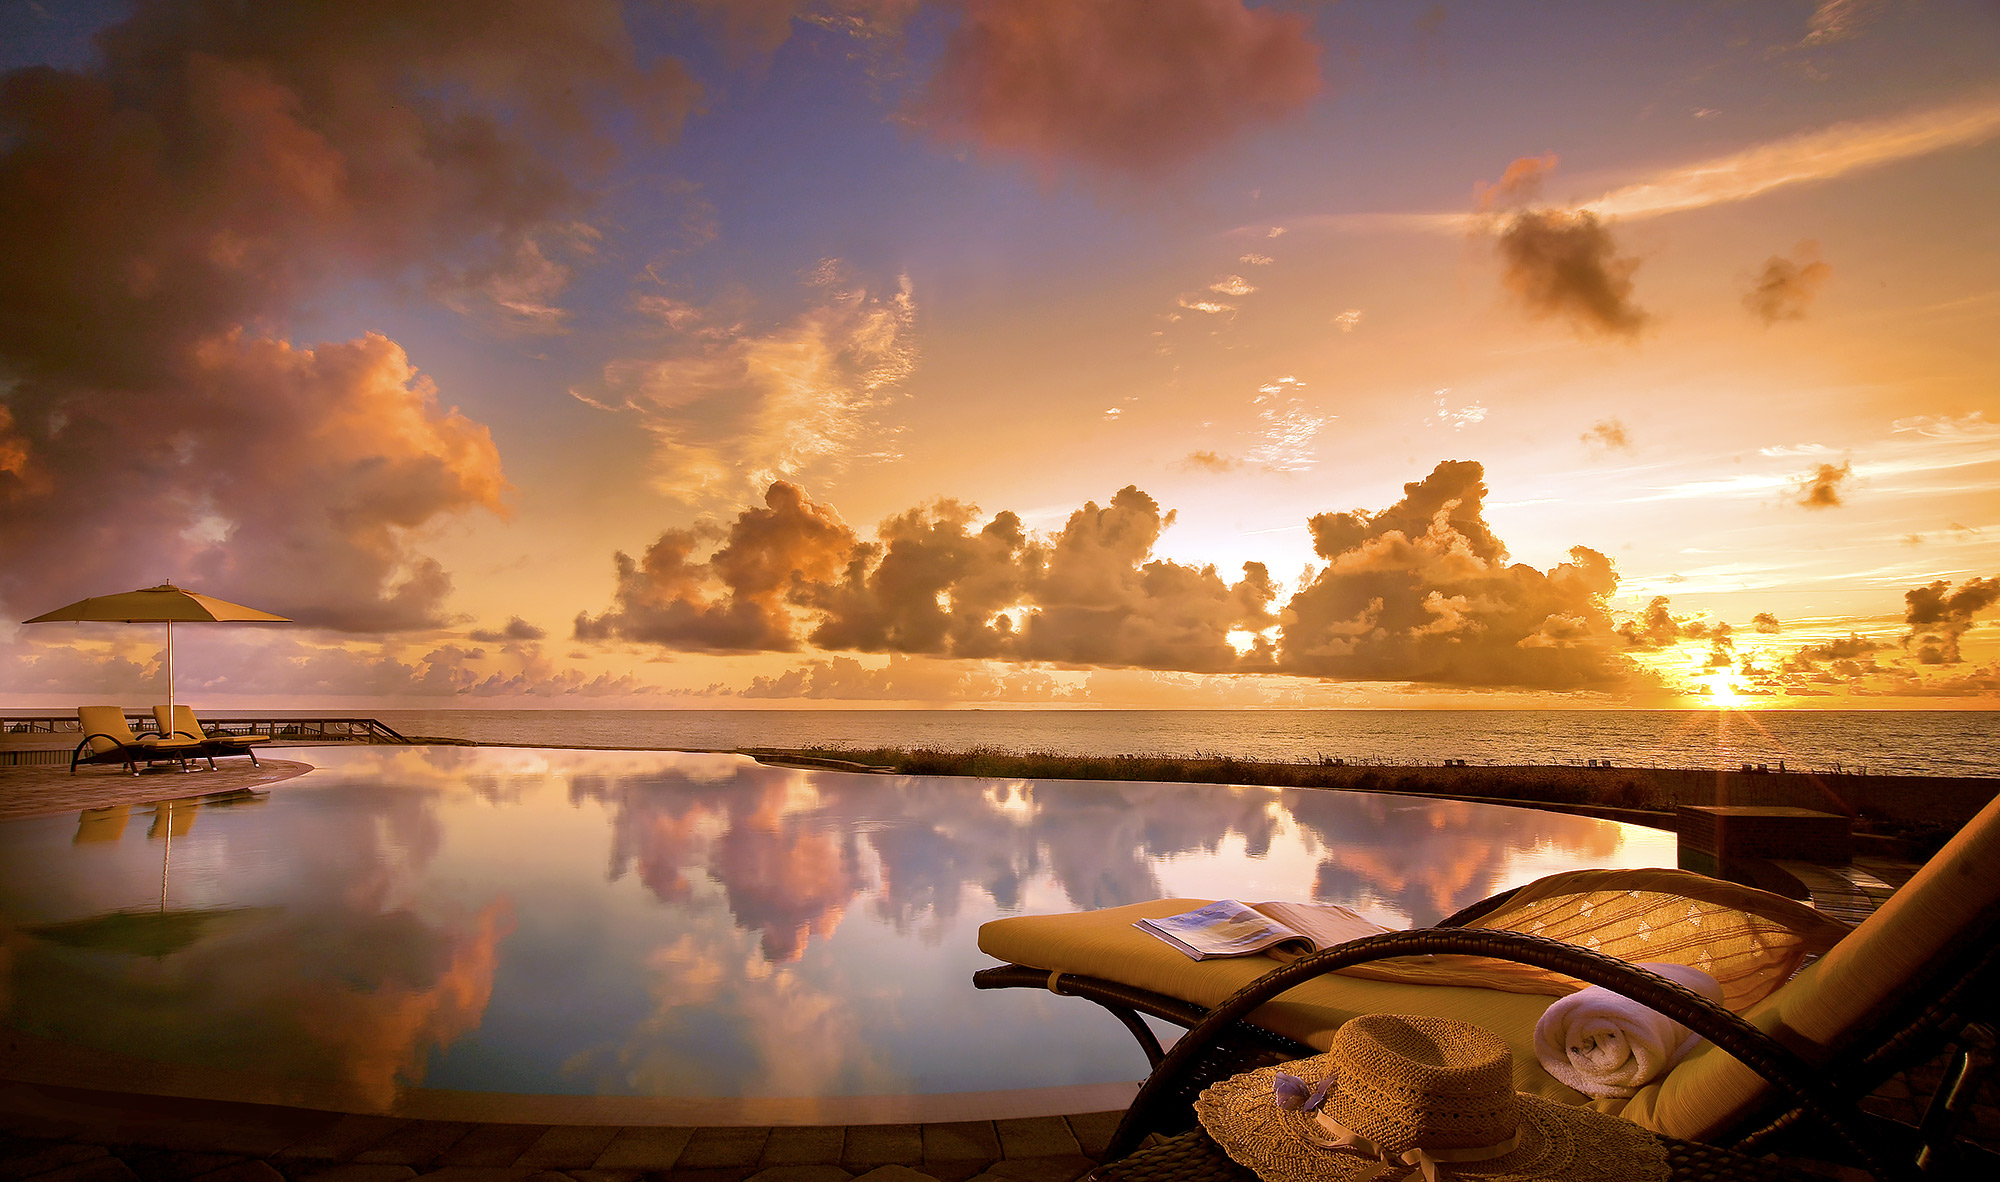 Sunrise-Ritz-Carlton-Residences-Palm-Beach-Florida